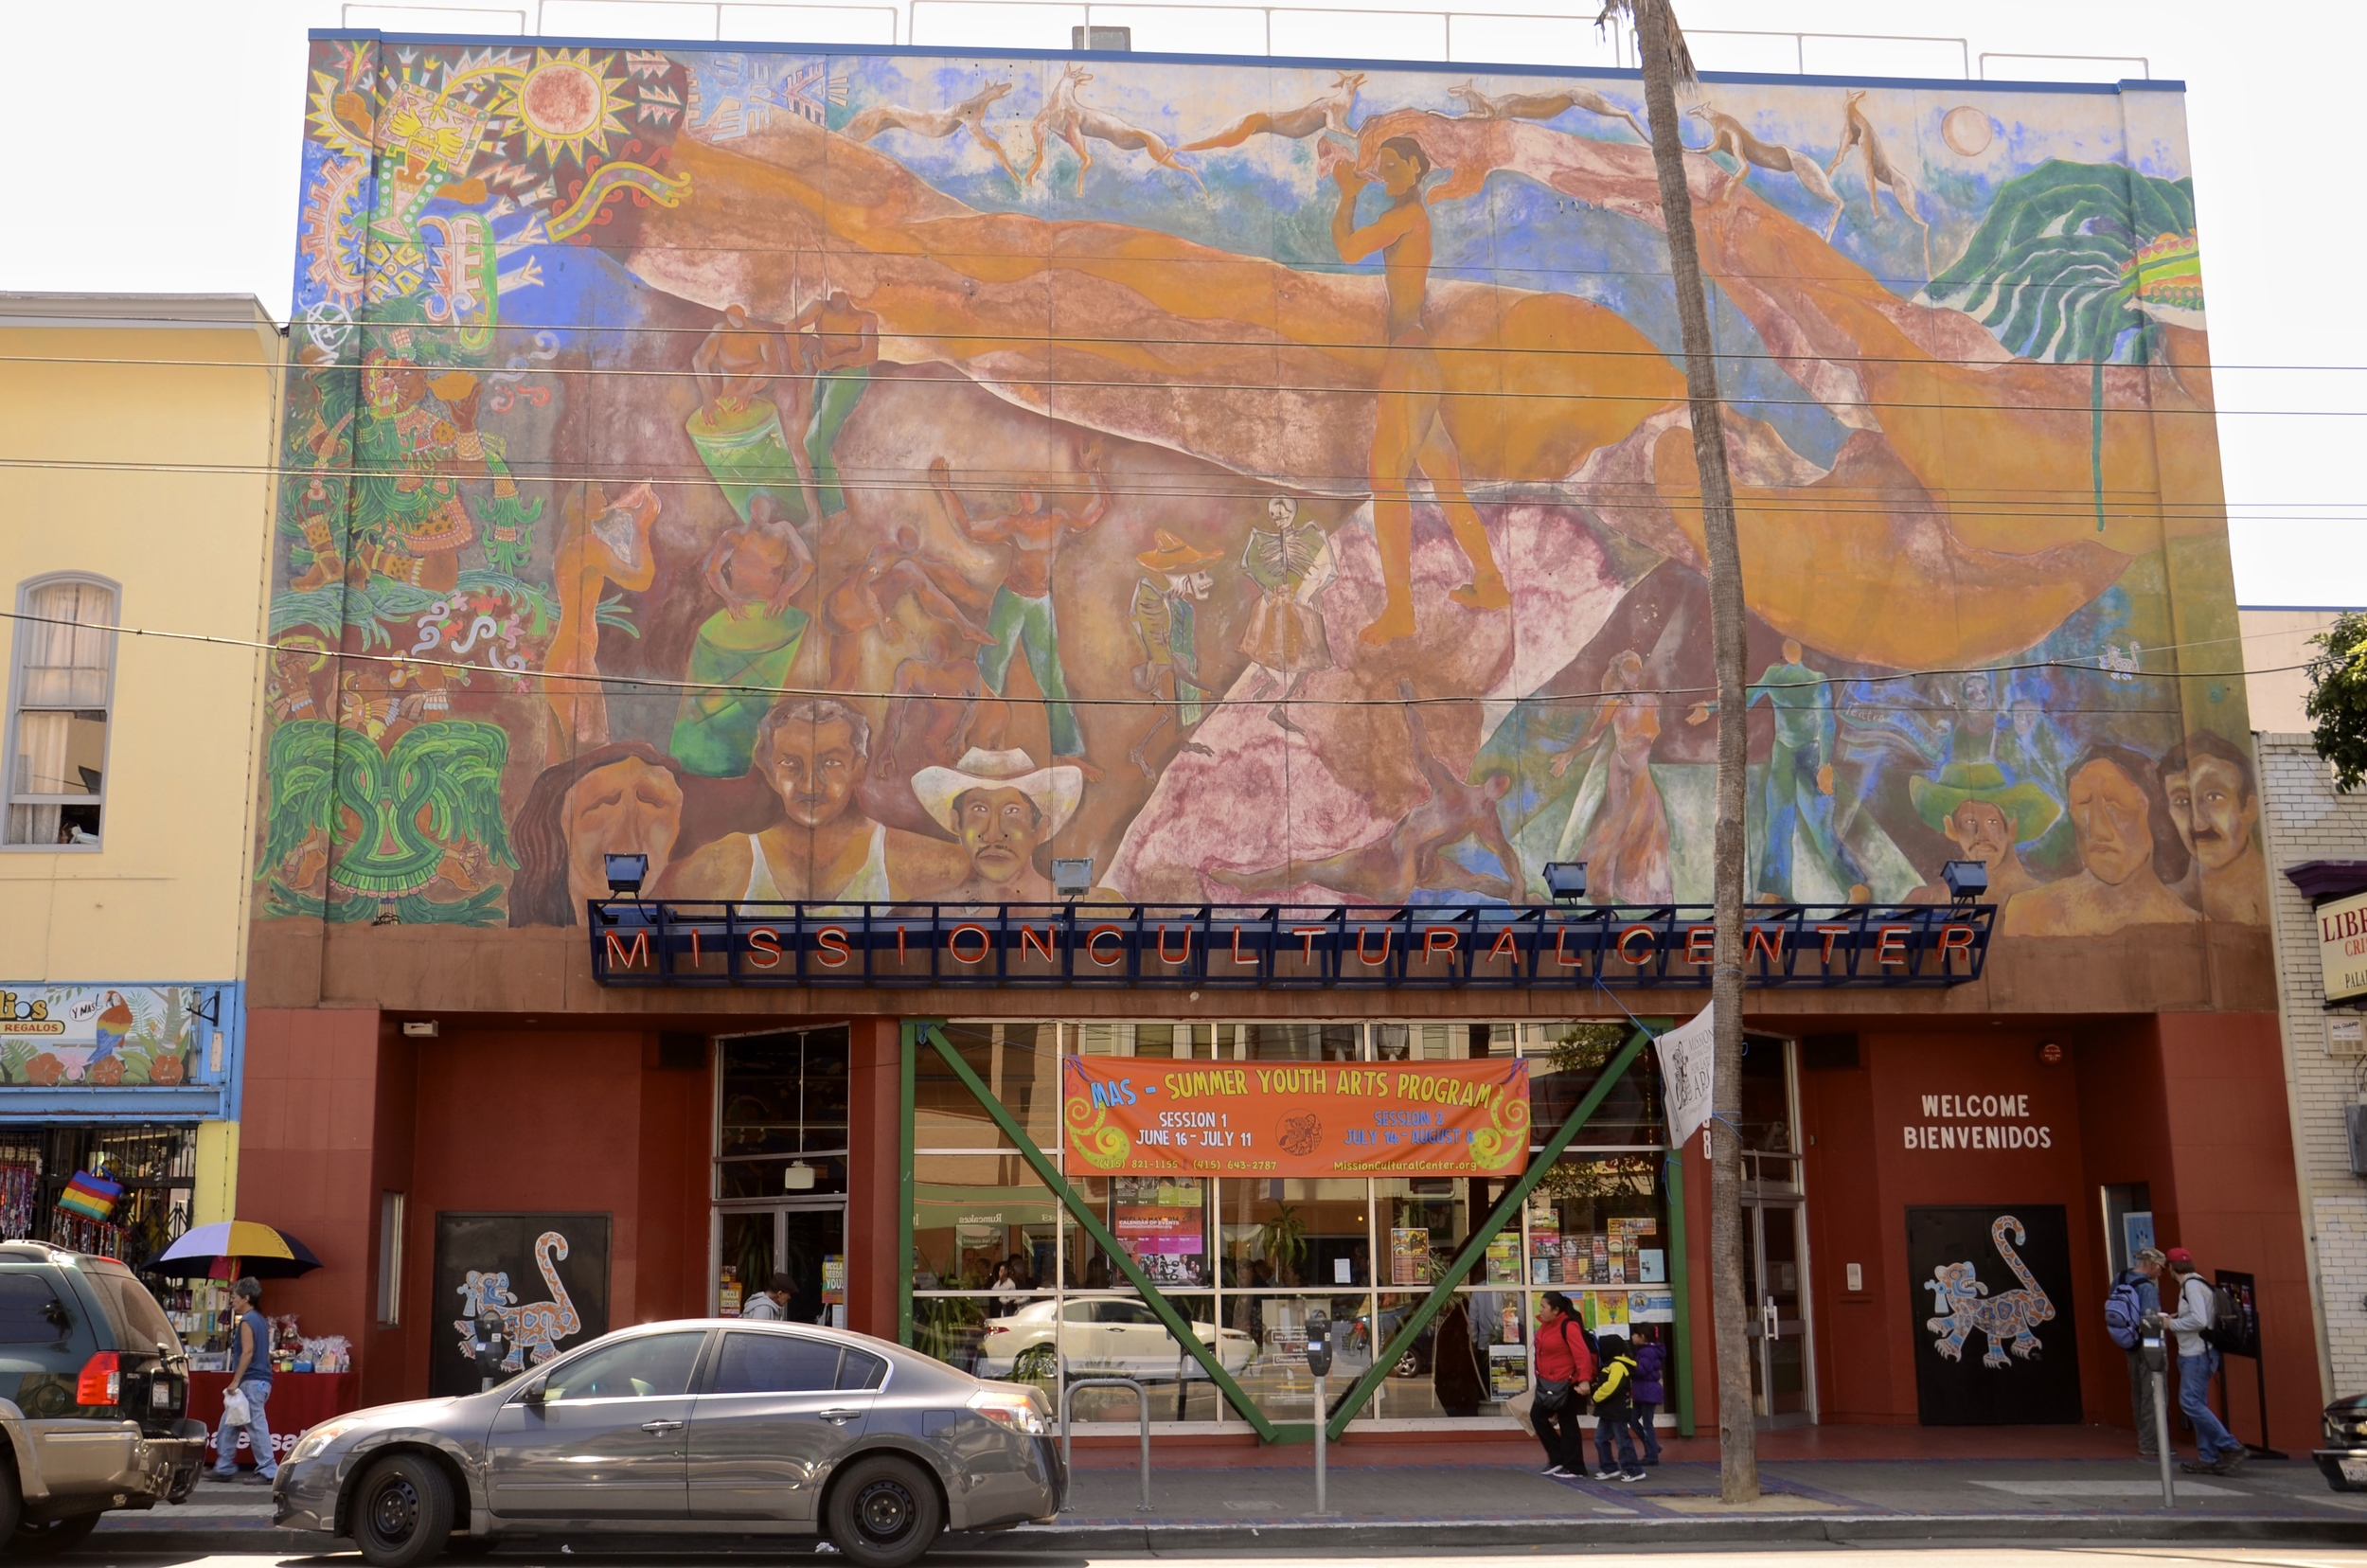 The Mission Cultural Center for the Latino Arts was founded in 1976 by Latino artists and activists.